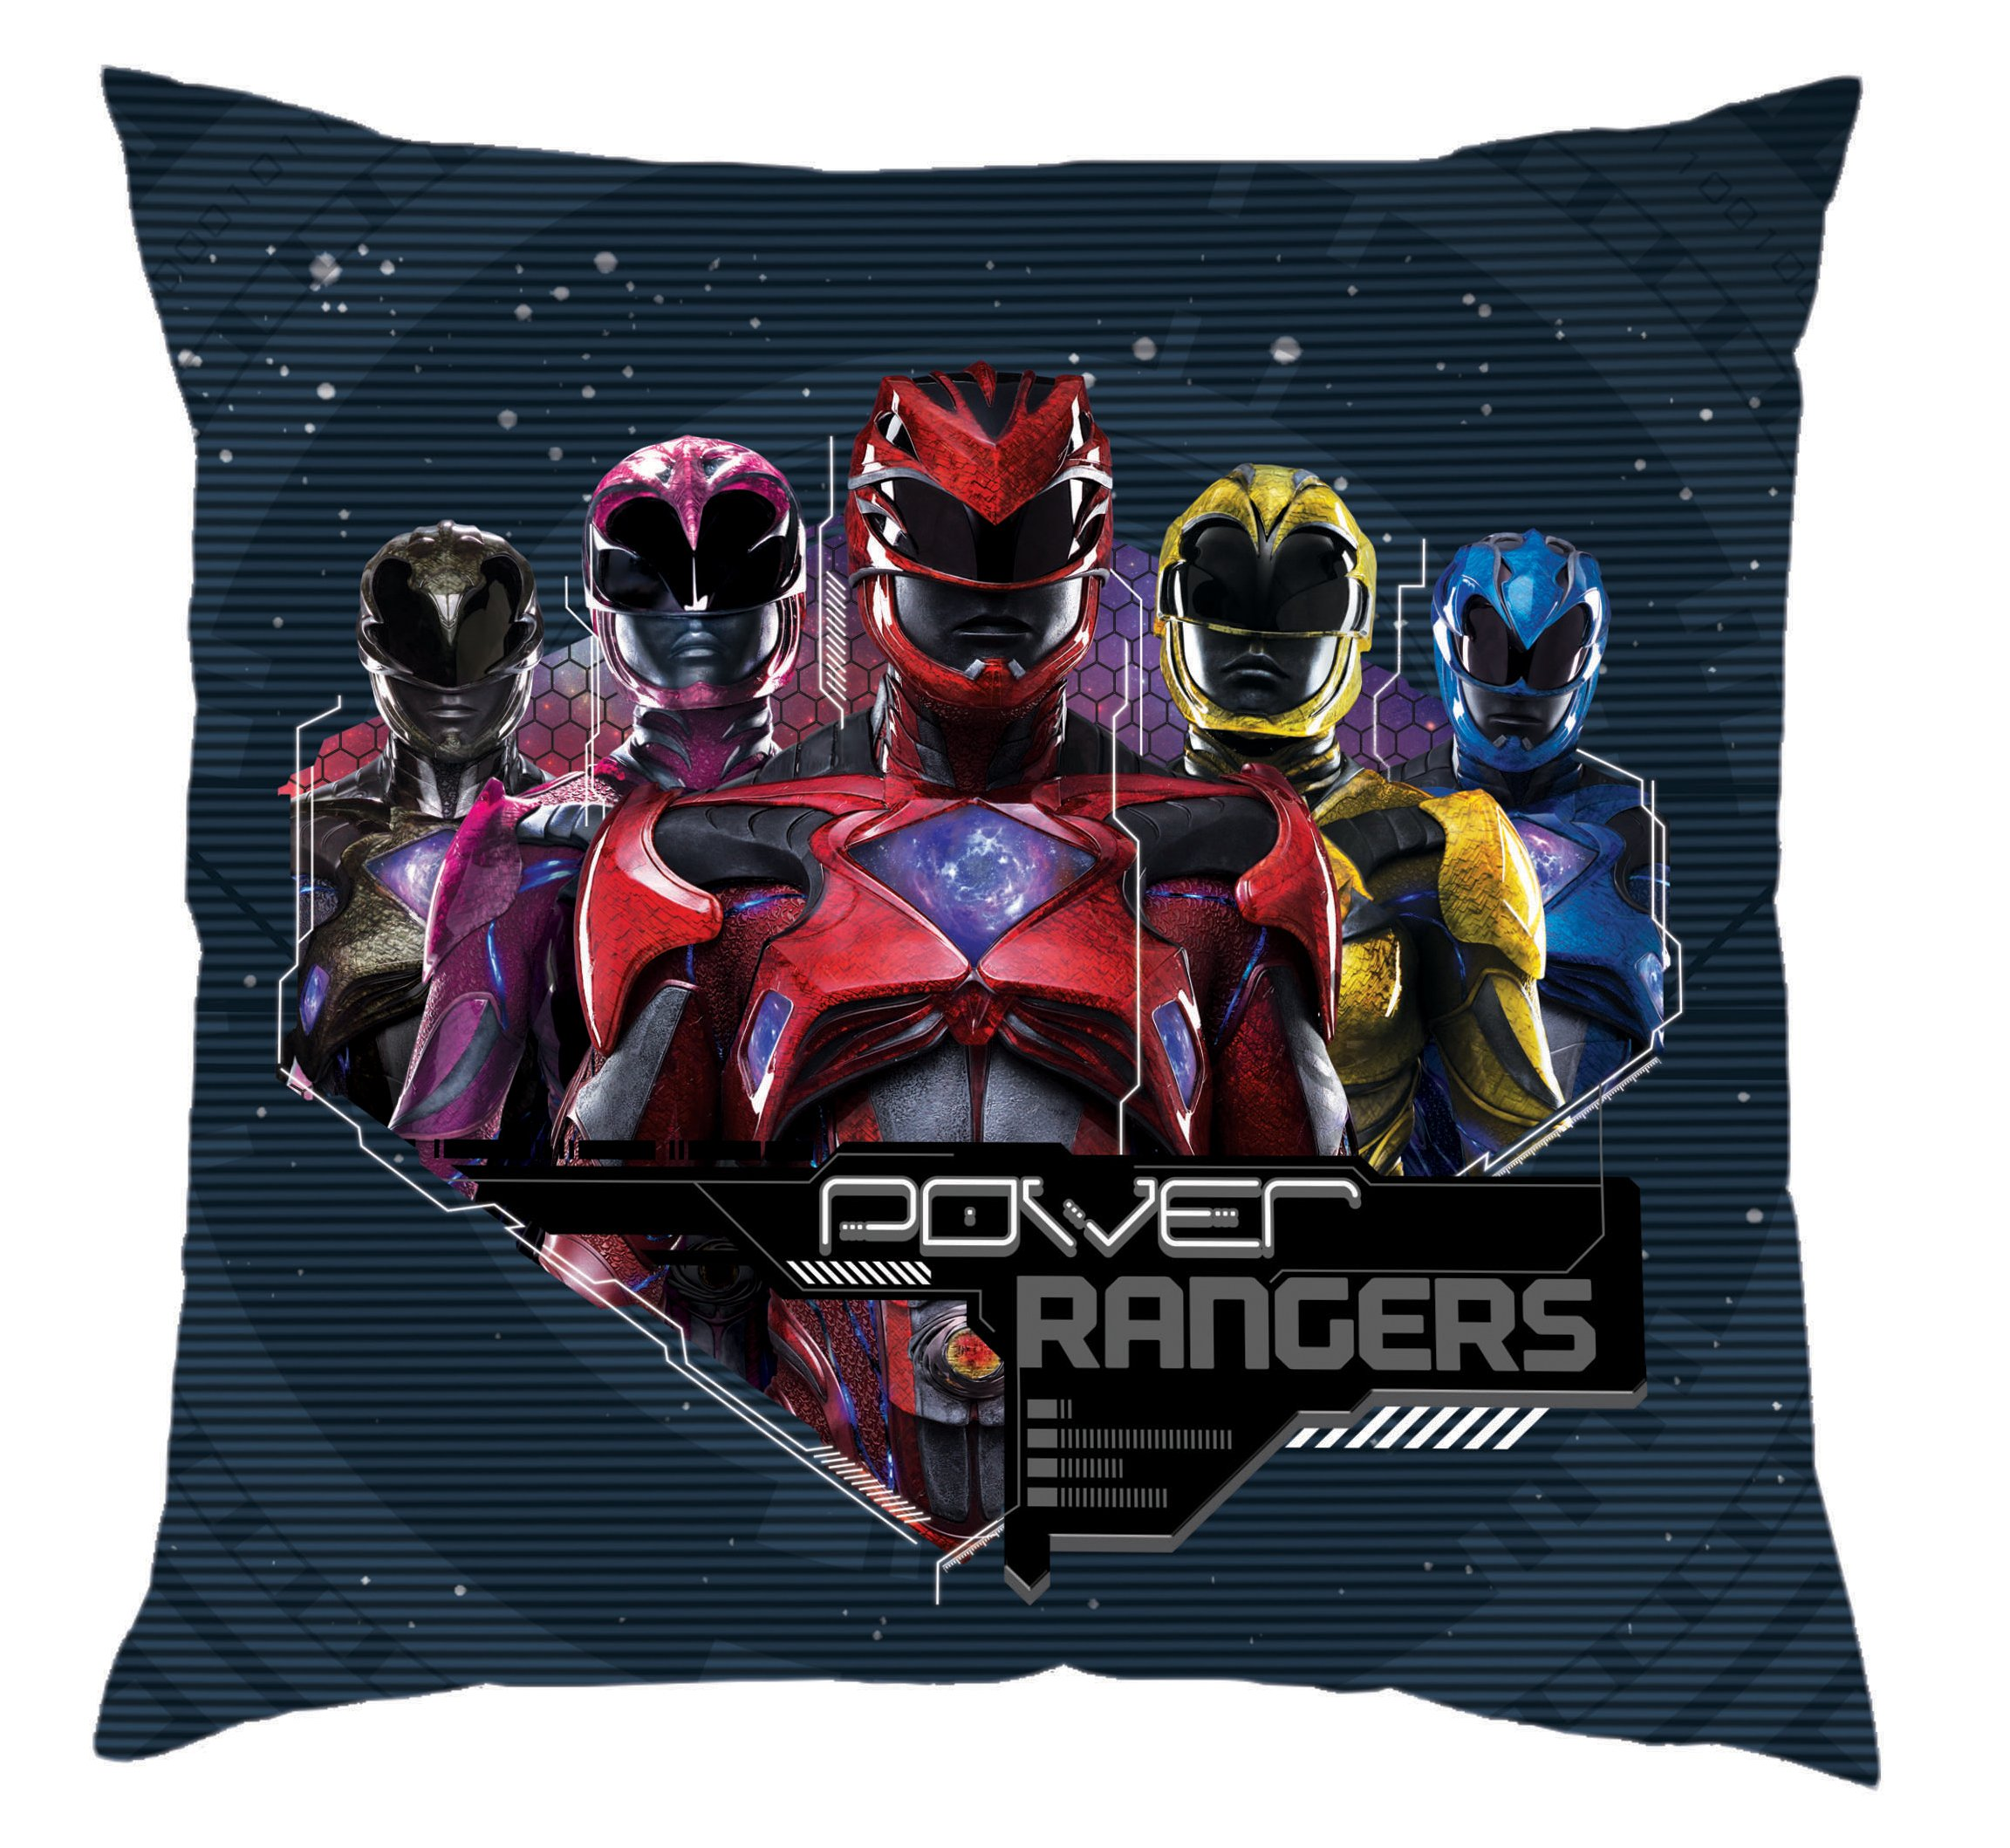 Power Rangers Movie Cushion, Multicolour